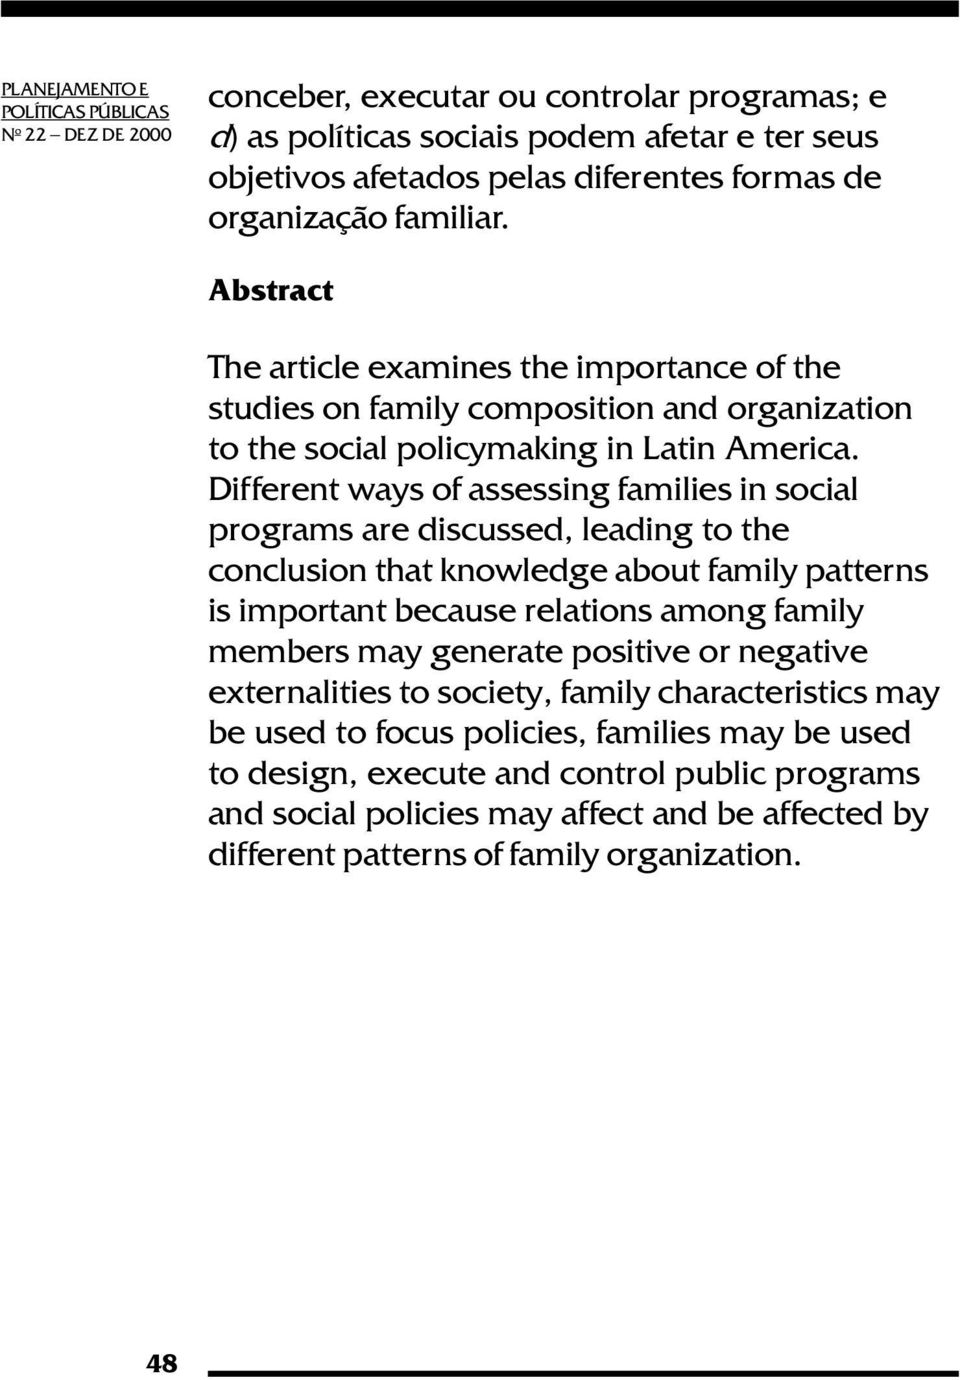 Different ways of assessing families in social programs are discussed, leading to the conclusion that knowledge about family patterns is important because relations among family members may generate